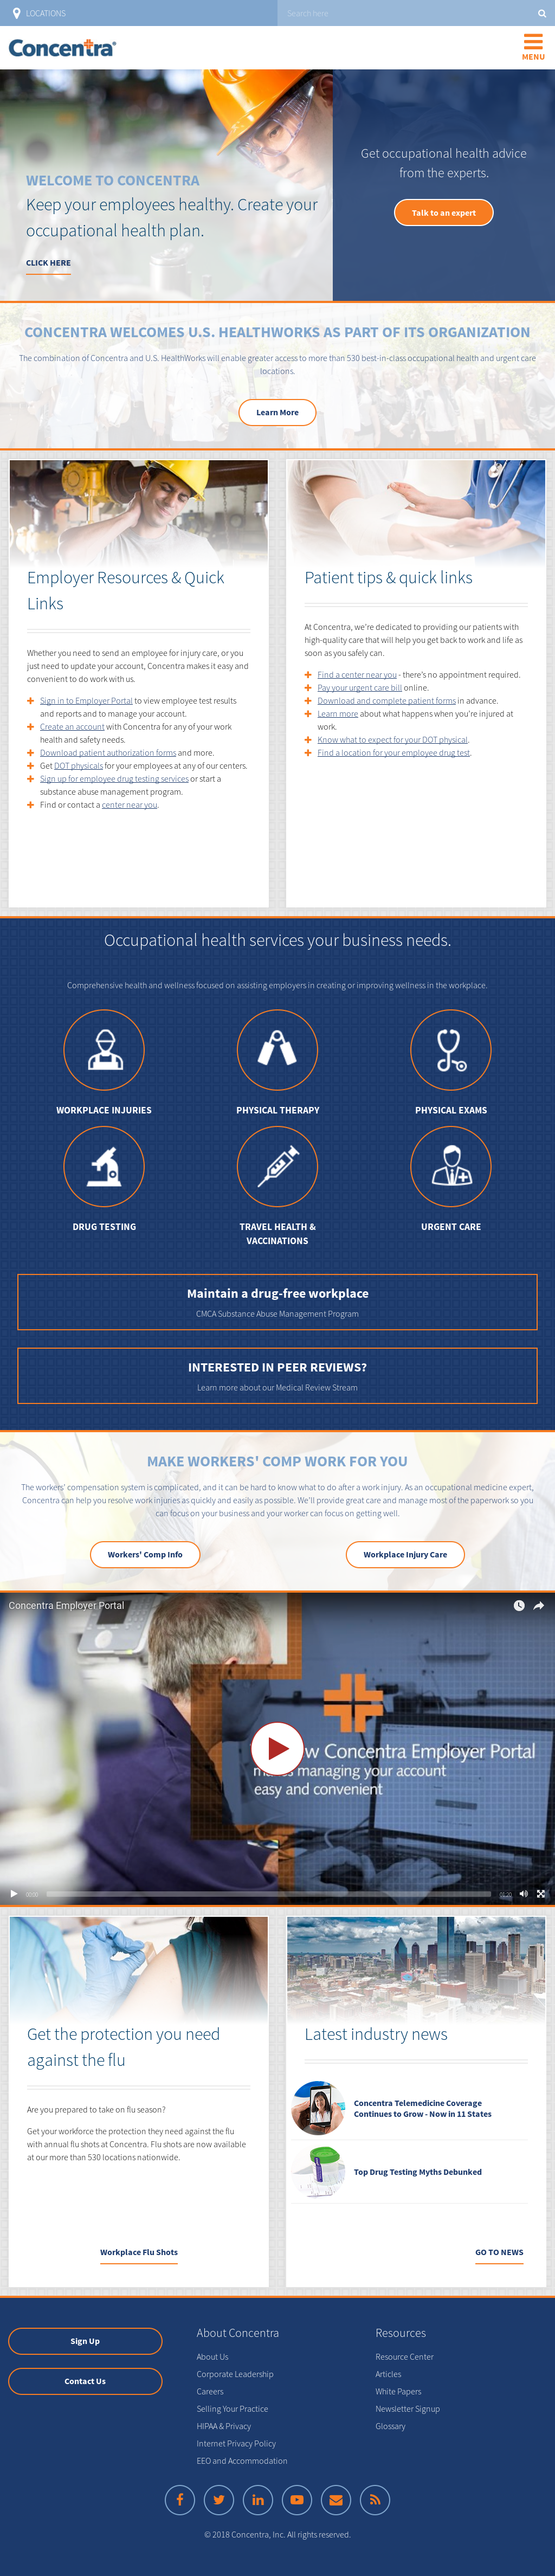 Concentra Competitors, Revenue and Employees - Owler Company Profile